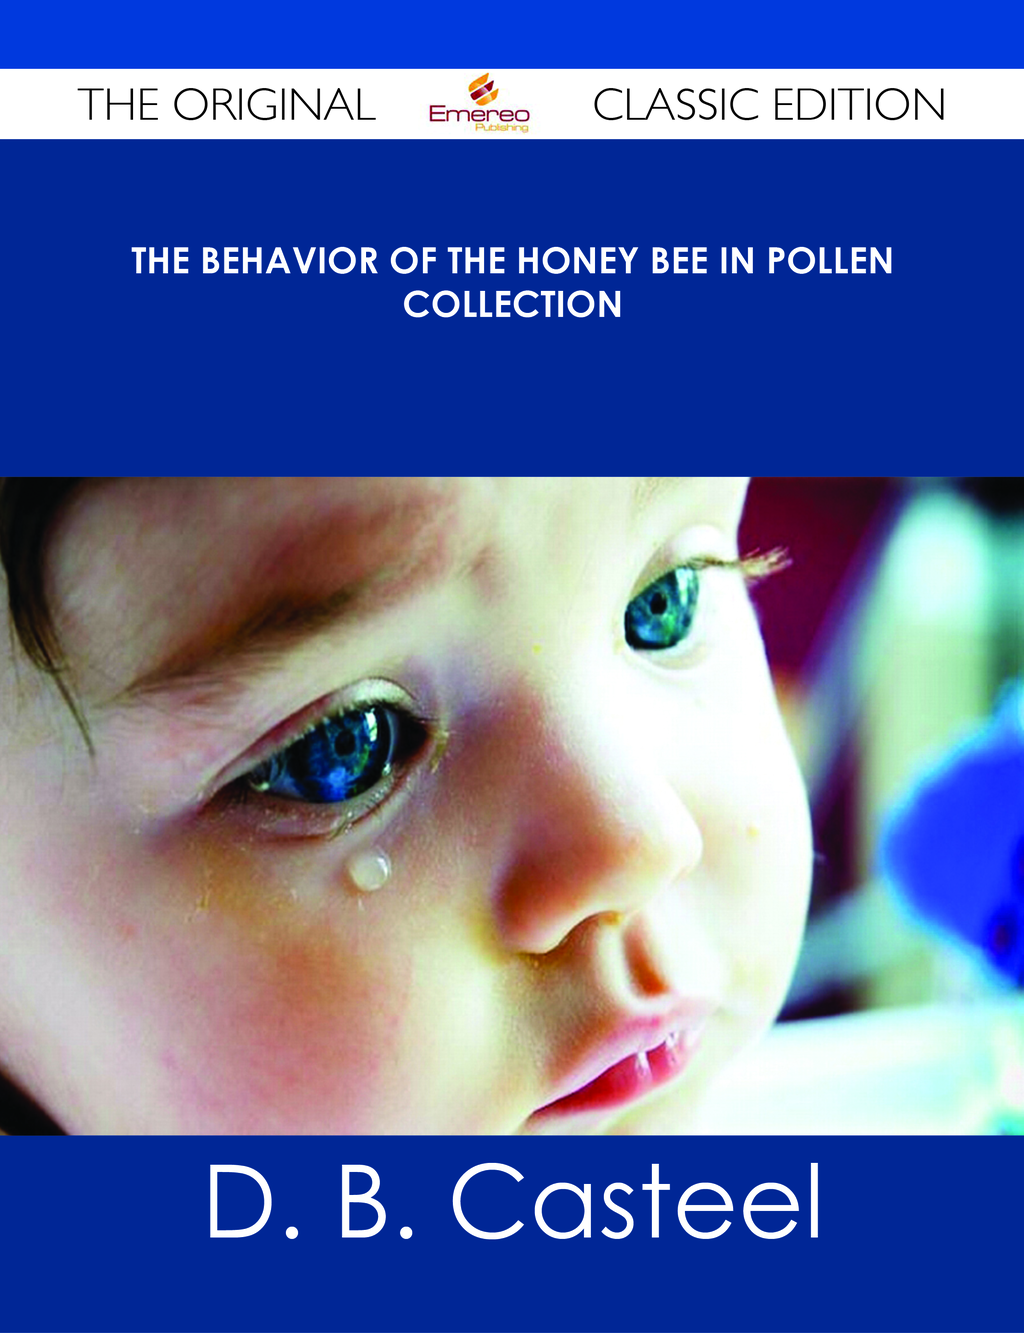 The Behavior of the Honey Bee in Pollen Collection - The Original Classic Edition